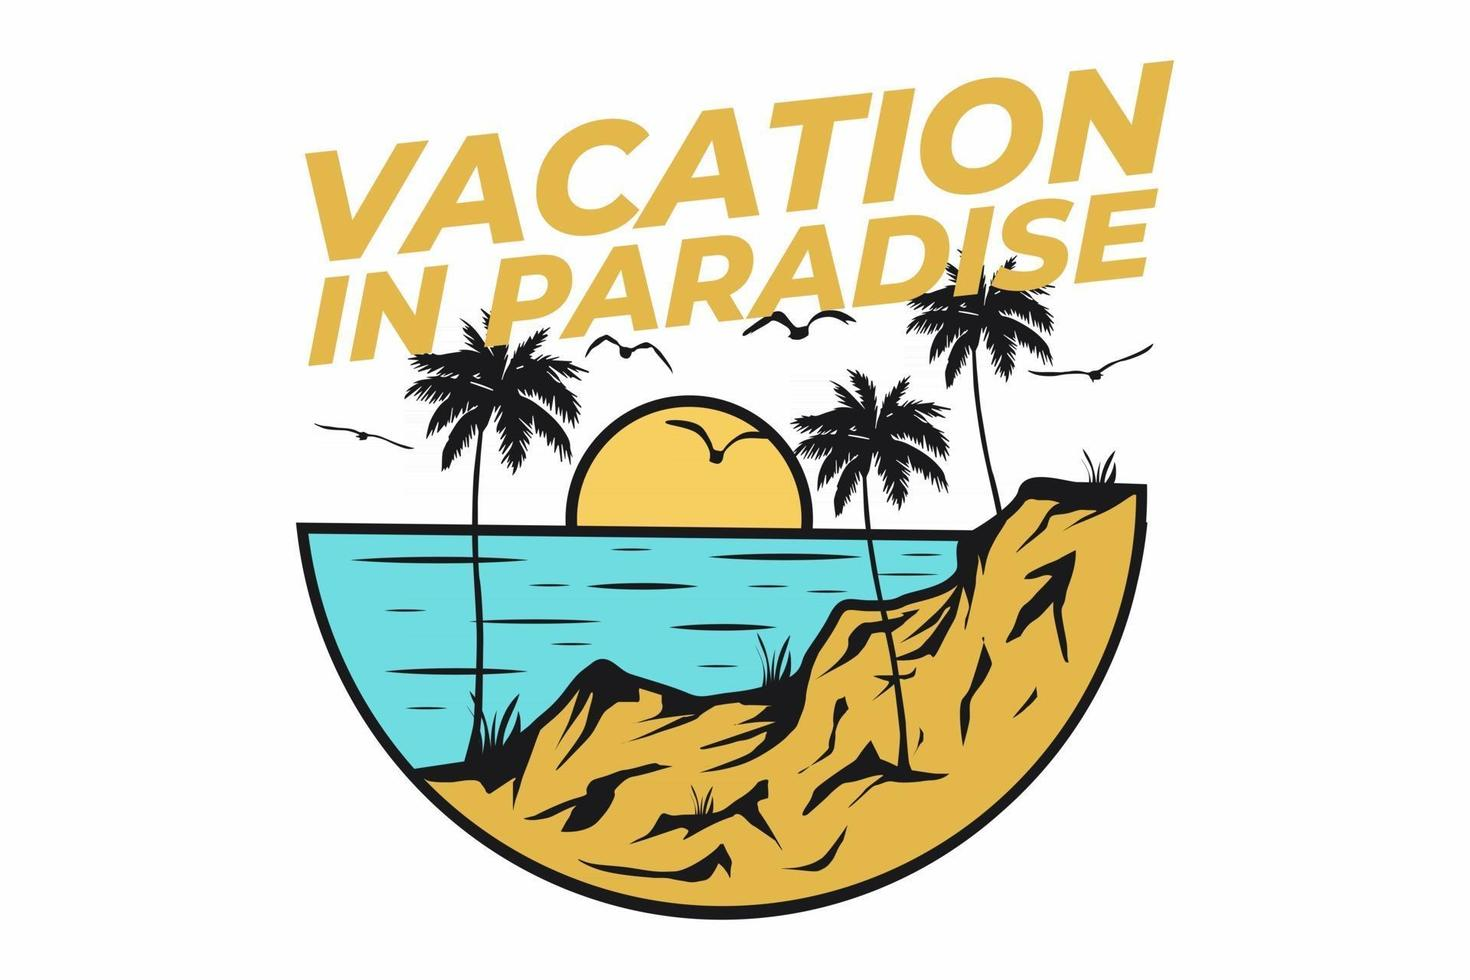 T-shirt retro beach vacation in paradise vintage style vector